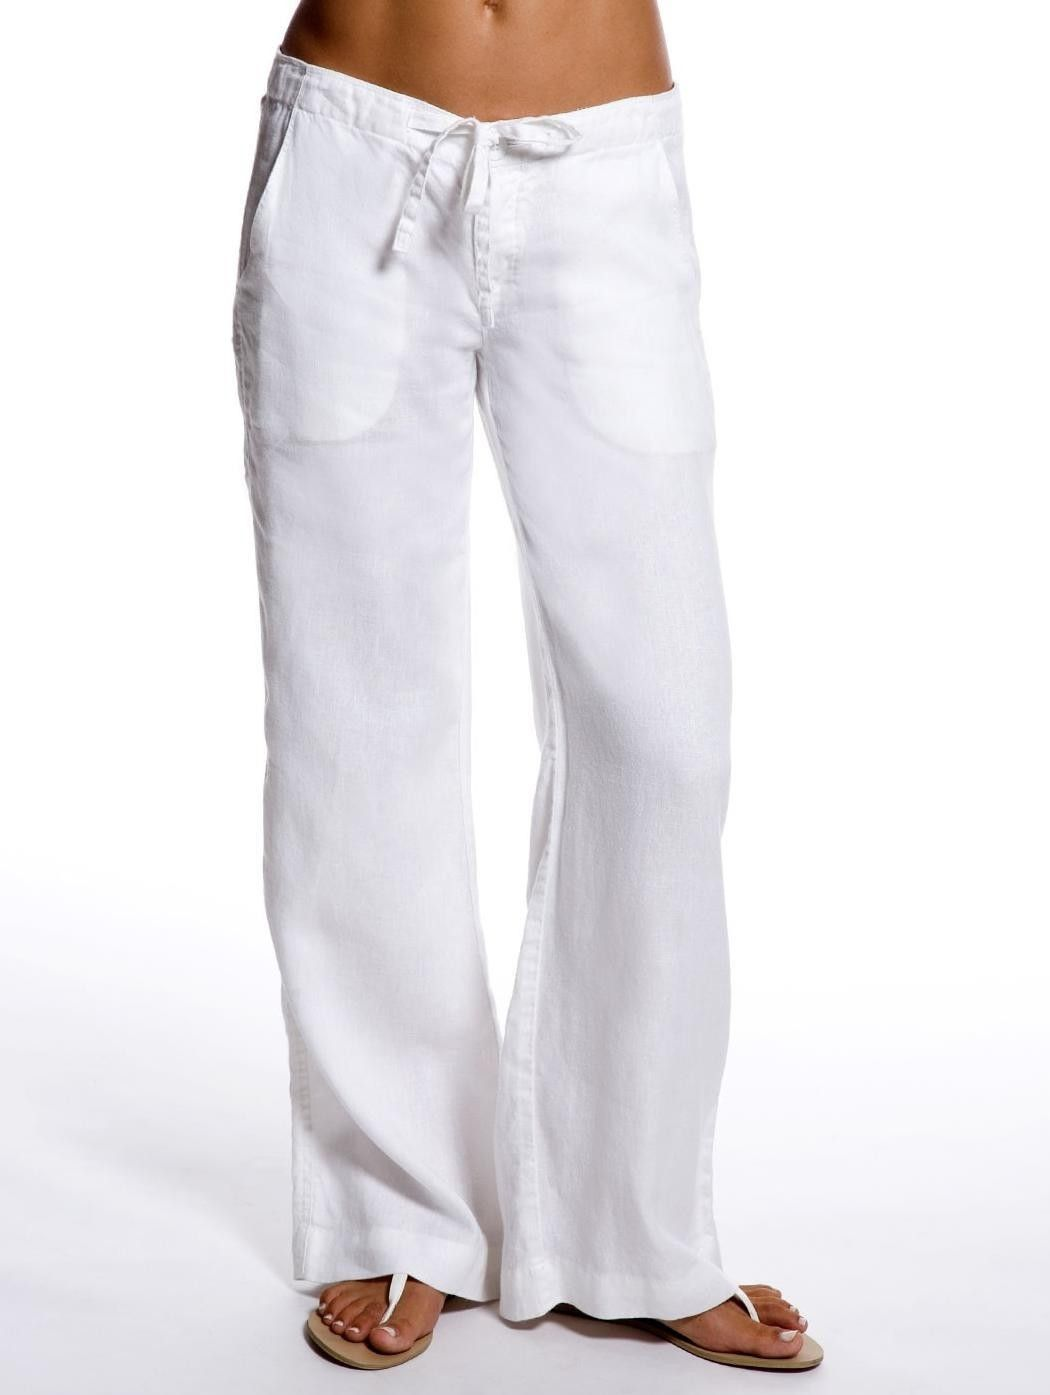 White Relaxed Linen Pants - Women's Resort Wear | Island Company ...